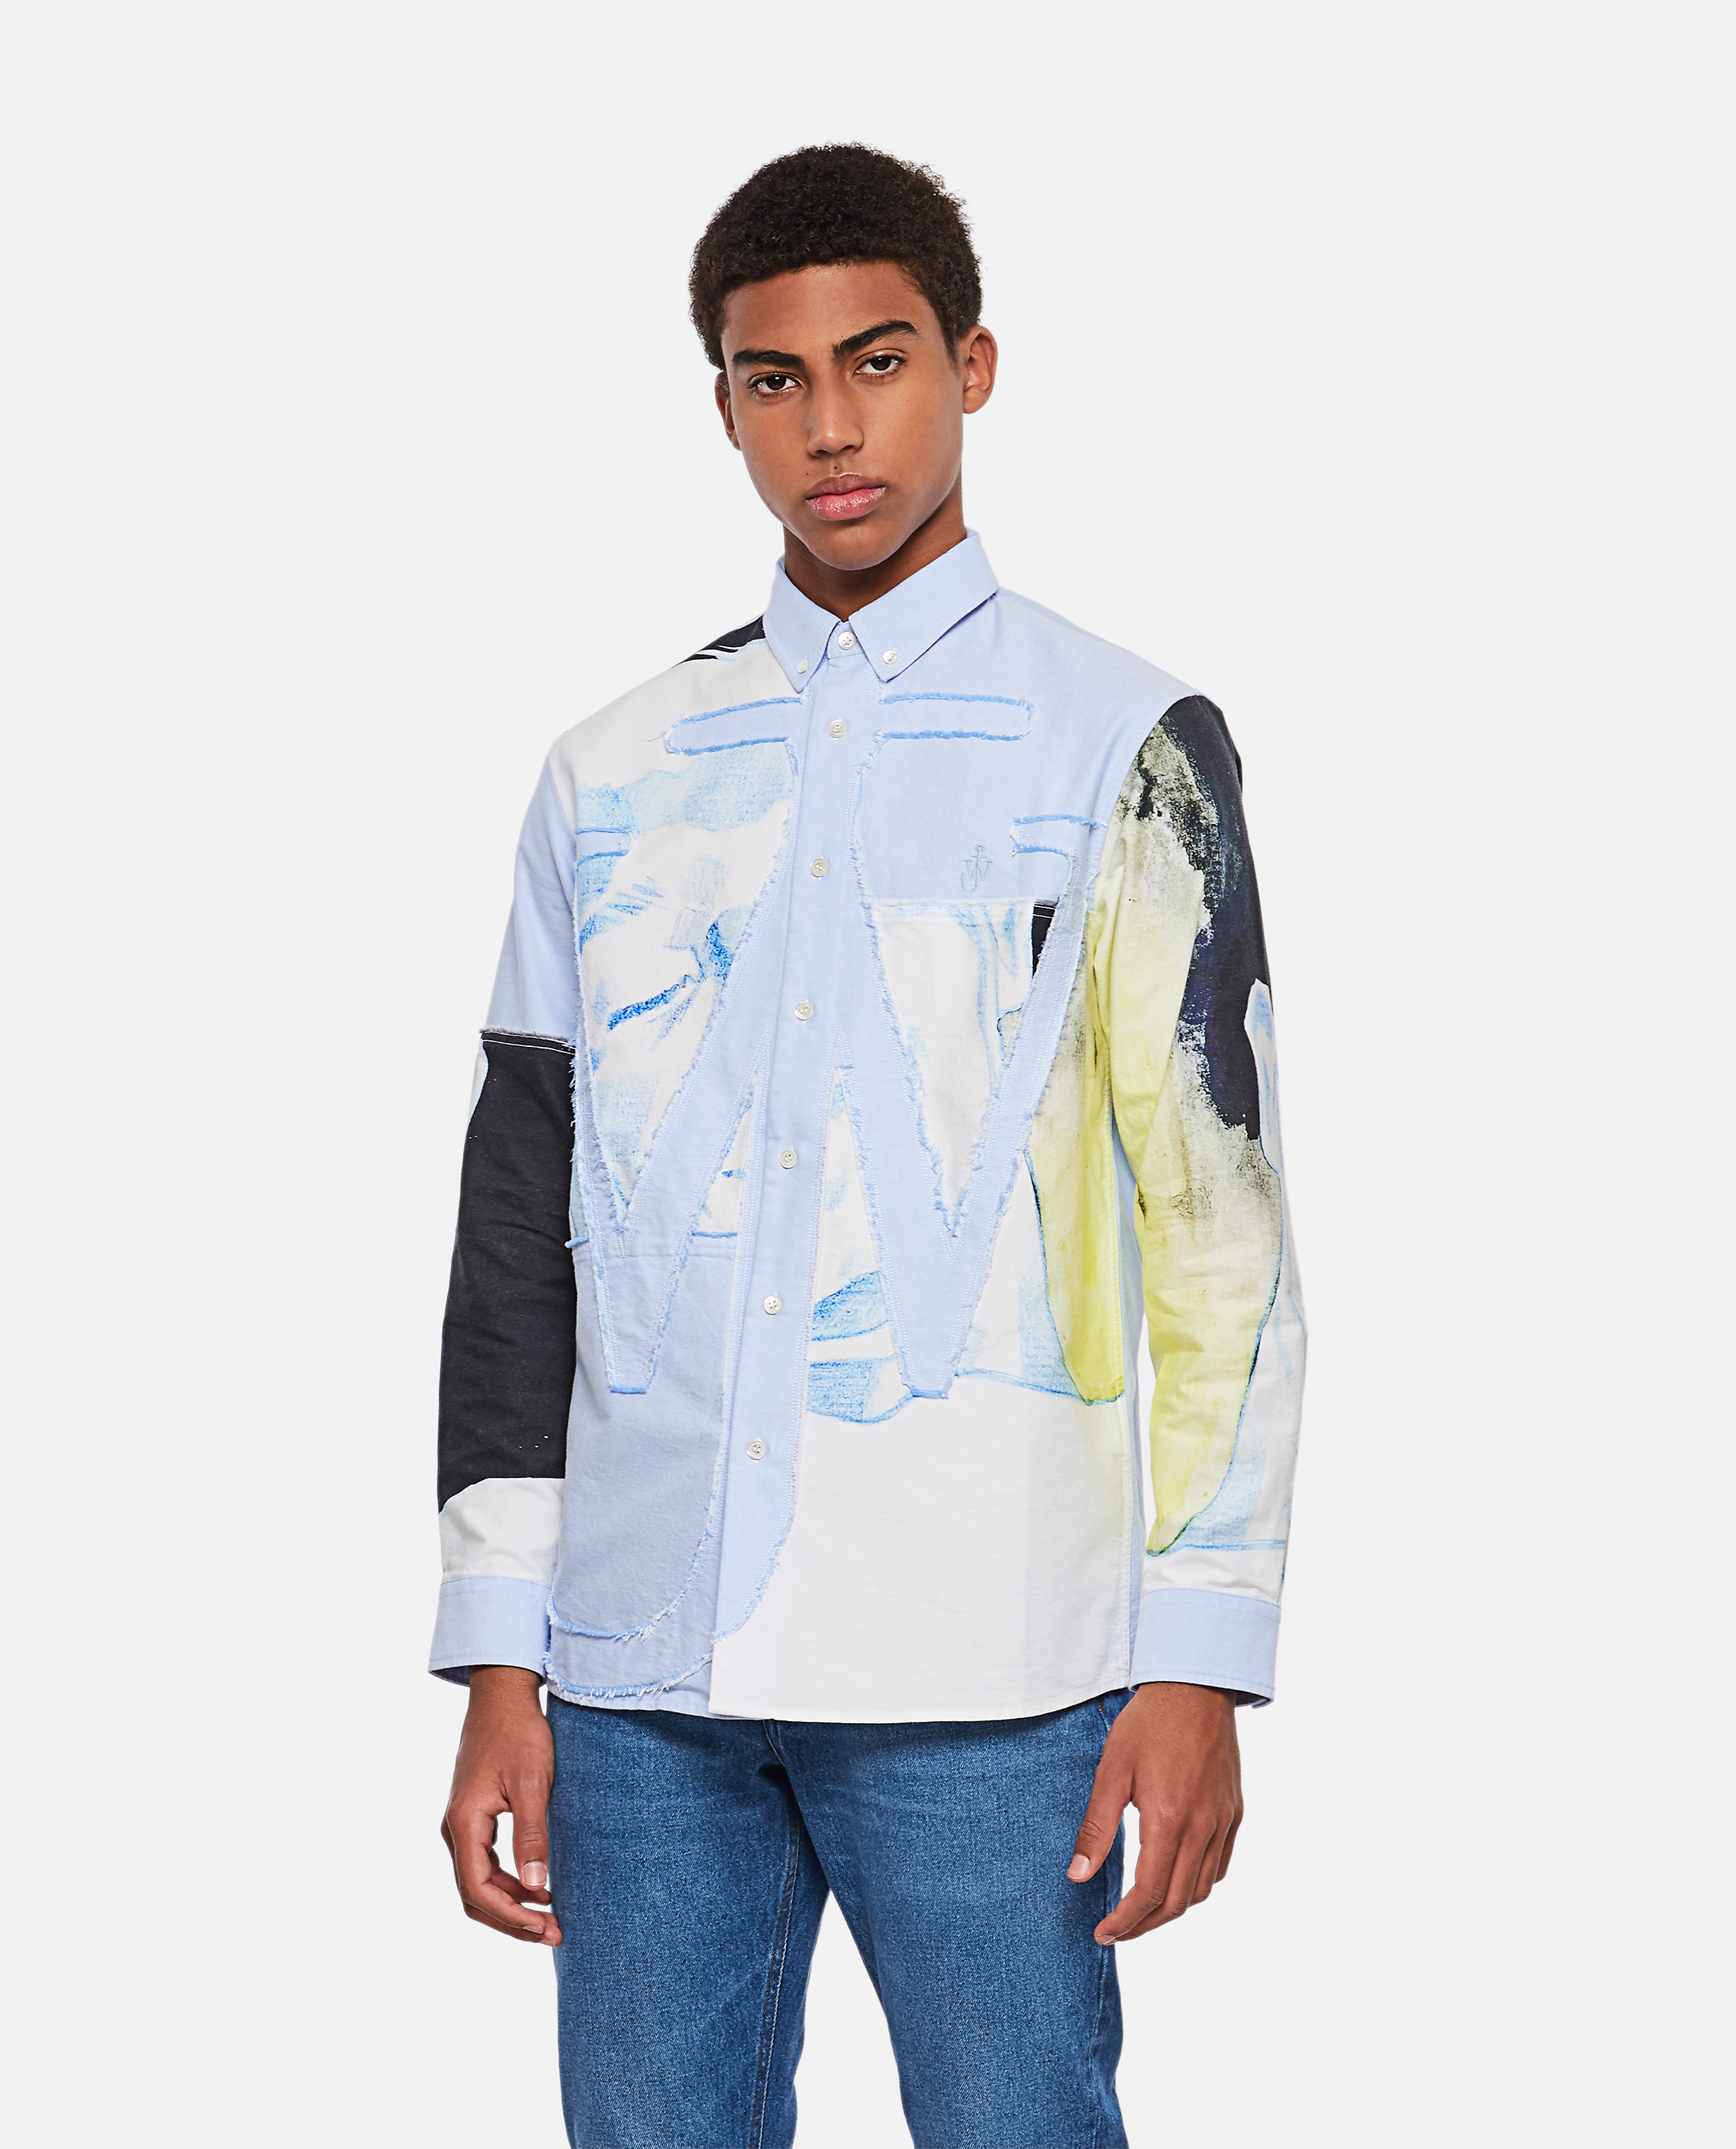 Jw Anderson Shirts J.W. ANDERSON COTTON SHIRT WITH PRINT